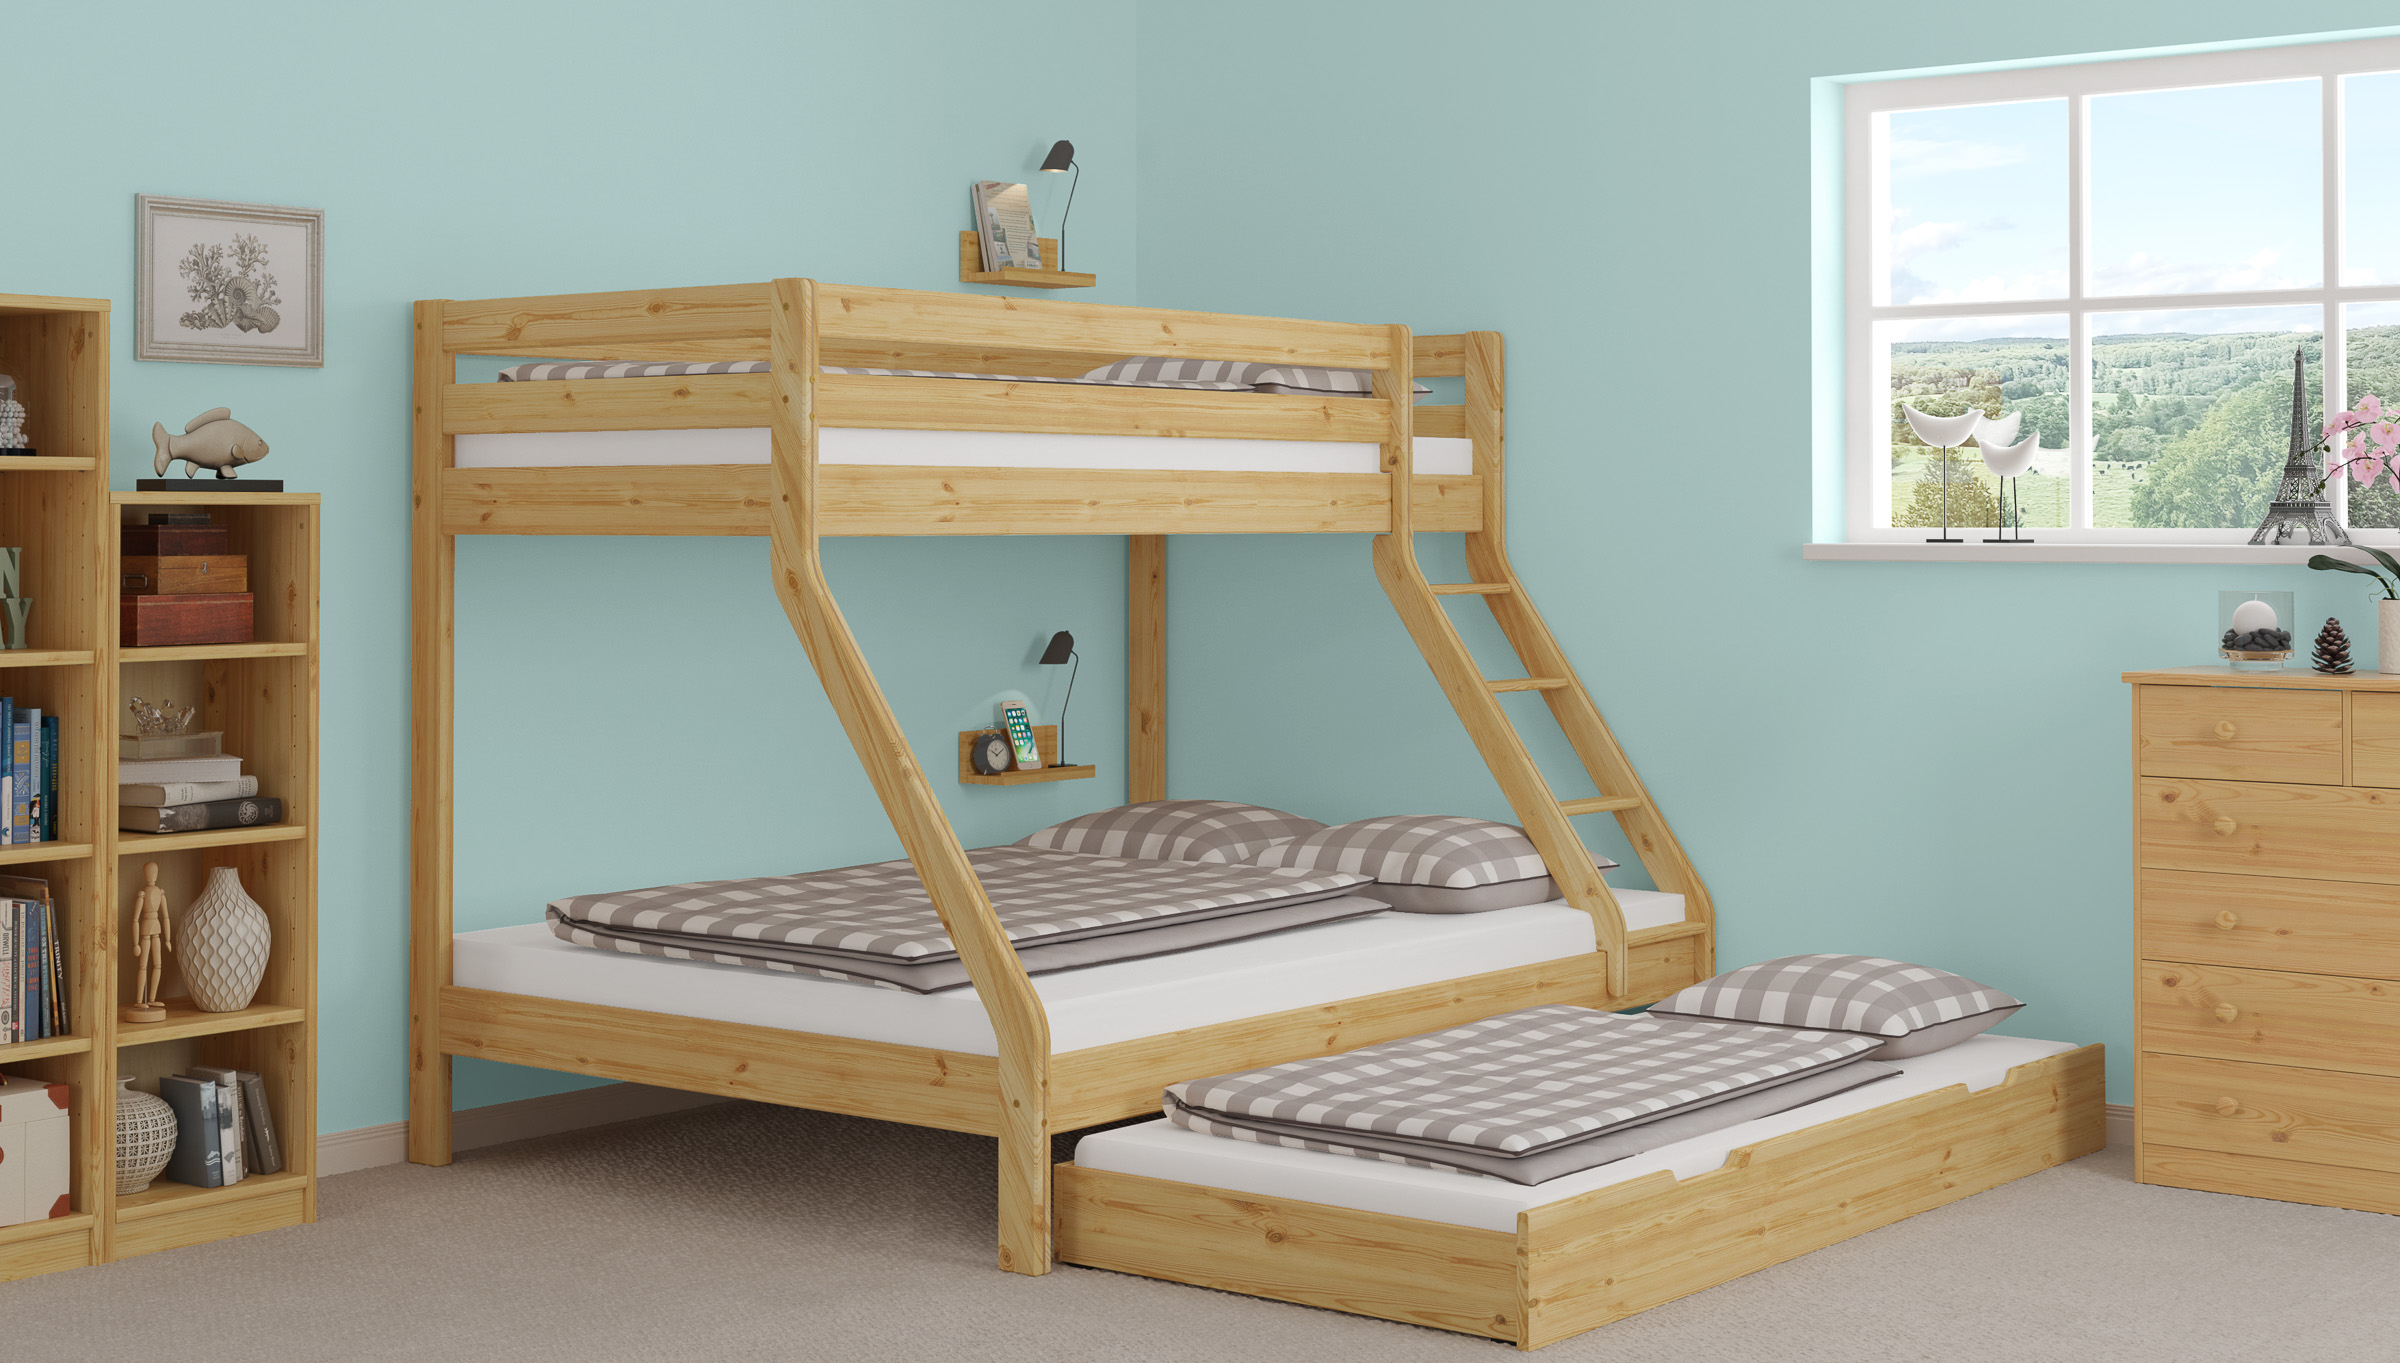 Bunk Bed 3 Places For 140x200 90x200 Mattresses Also For Adults In Solid Pine 60 19 09 14 Ceres Webshop